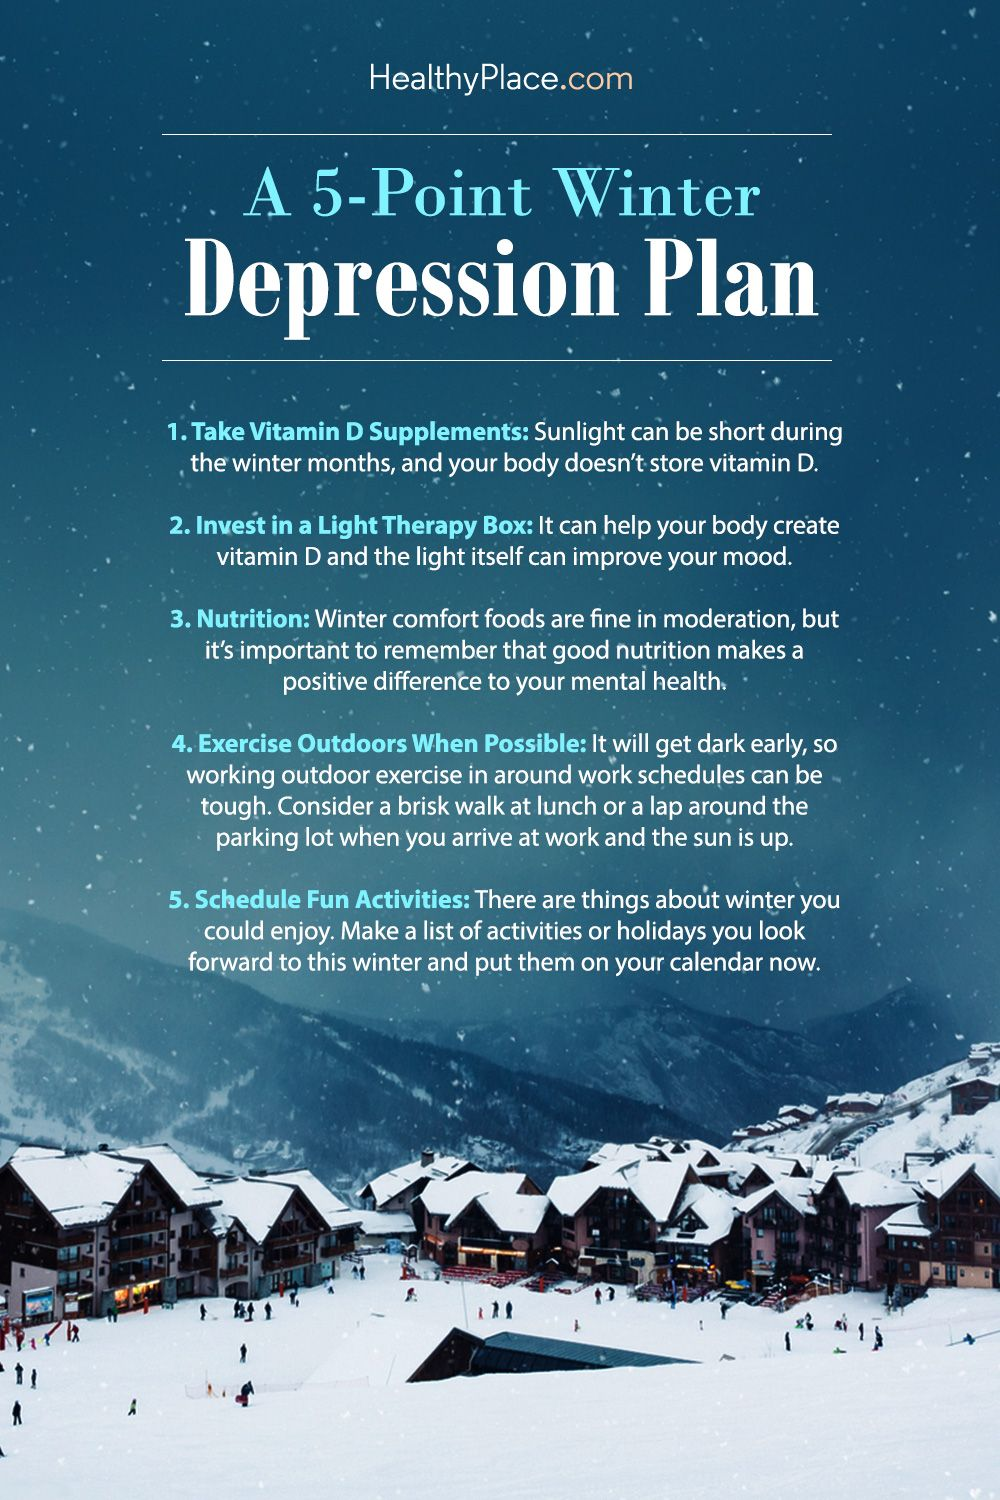 """""""Preparing for winter depression can help prevent or mitigate its effects. Here are some tips to strike a preemptive blow against winter depression. Take a look."""" www.HealthyPlace.com"""